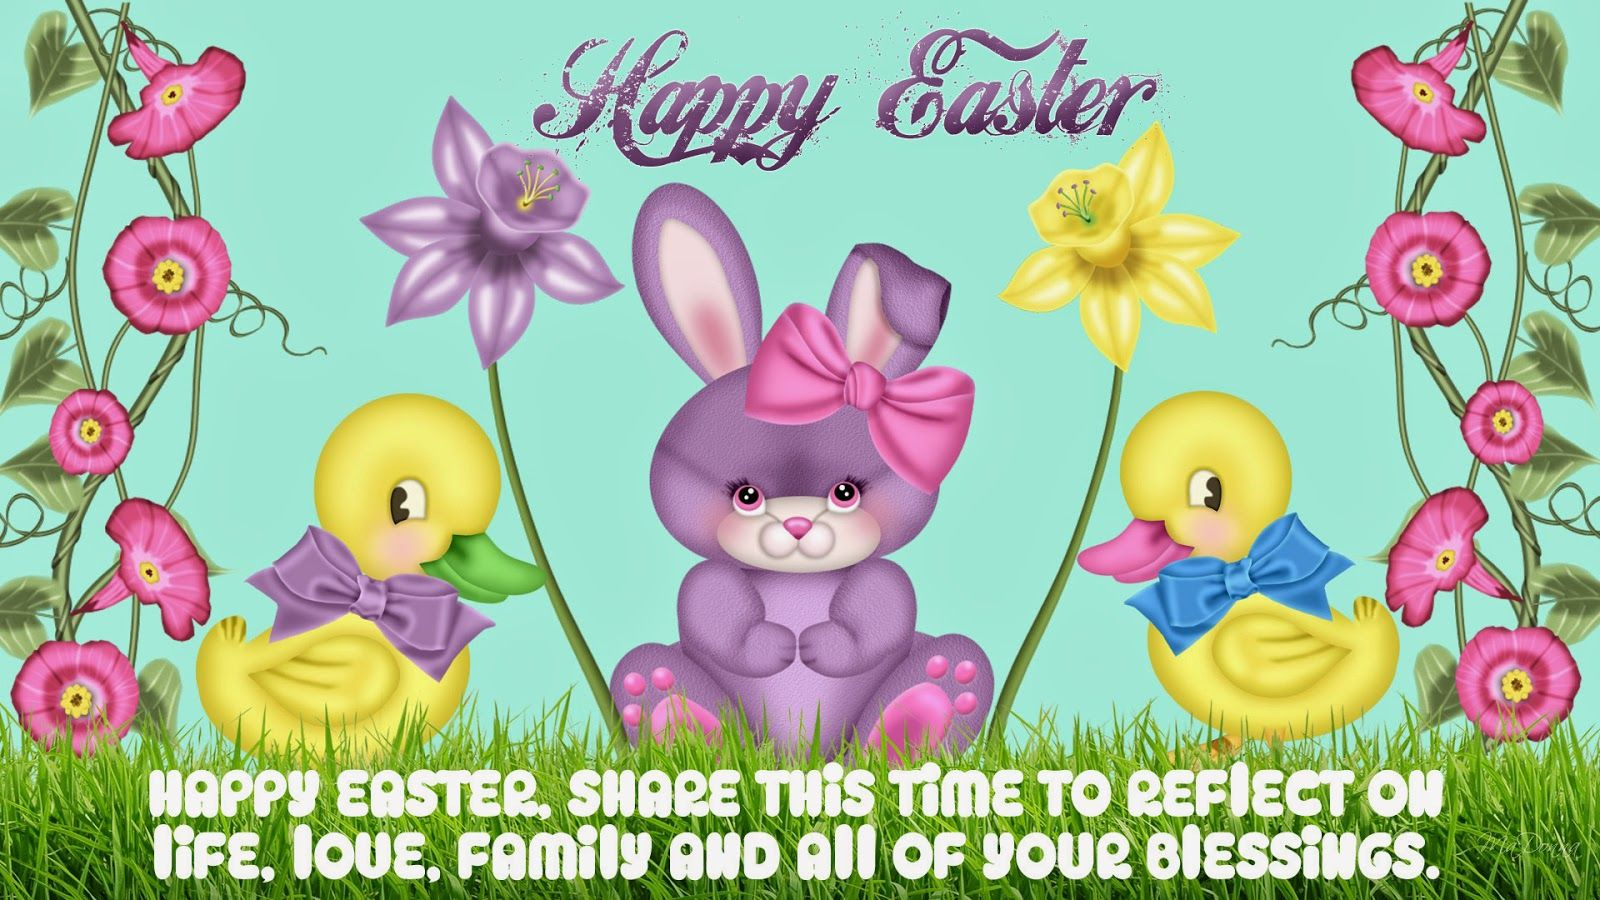 Happy easter greetings message happy easter wishes picture cards happy easter greetings message happy easter wishes picture cards with greetings messages kristyandbryce Choice Image